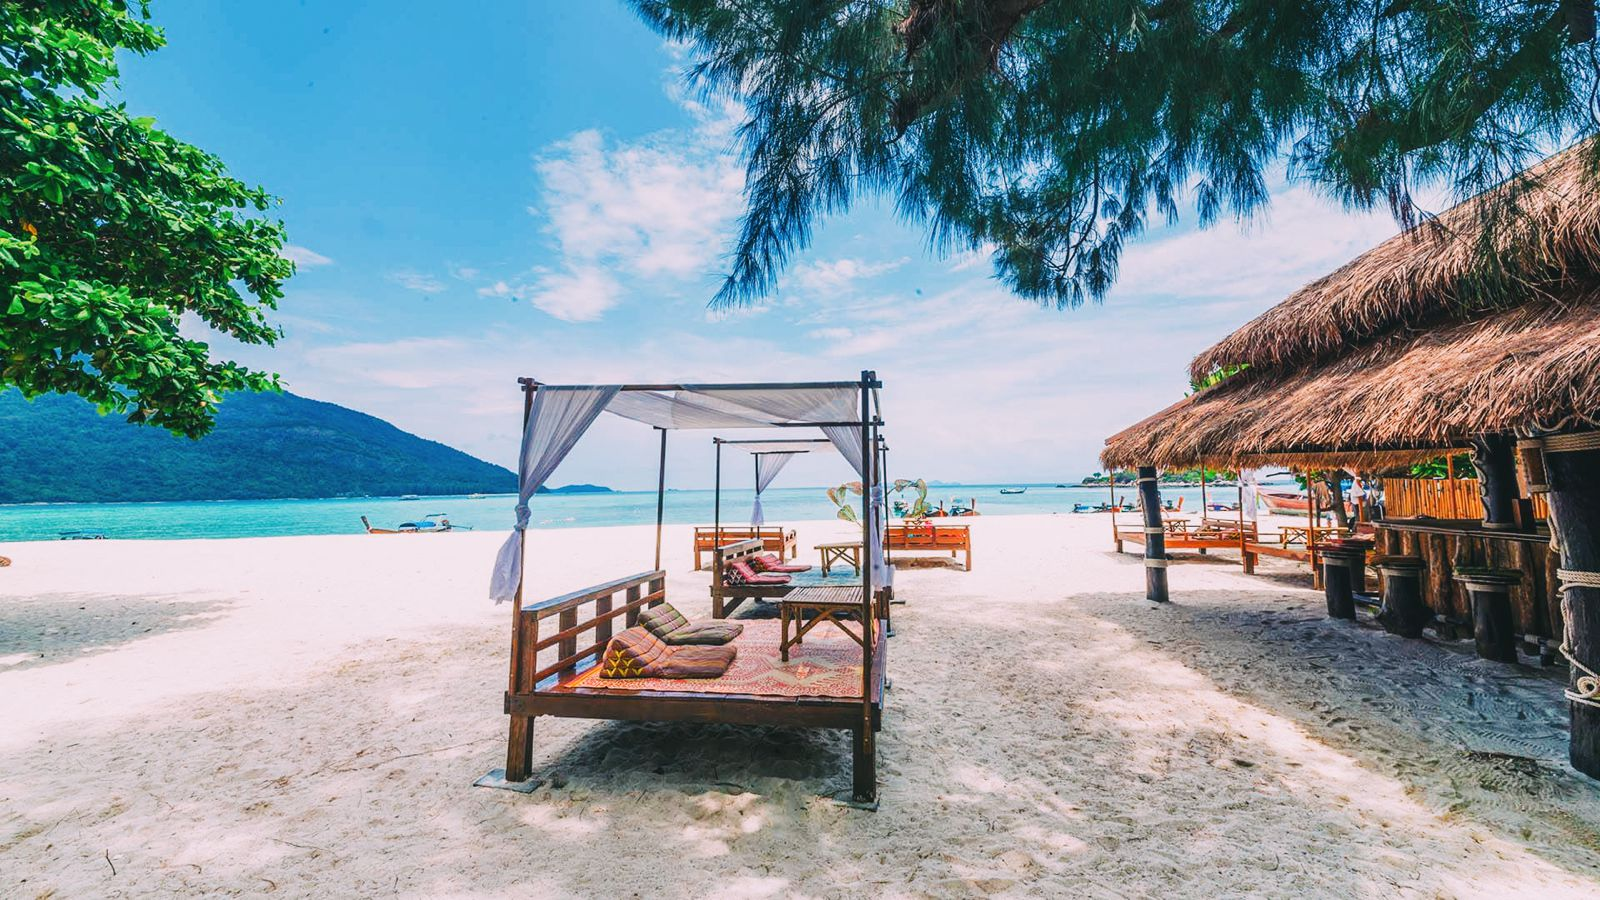 10 Stunning Beaches You Have To Visit In Thailand (4)